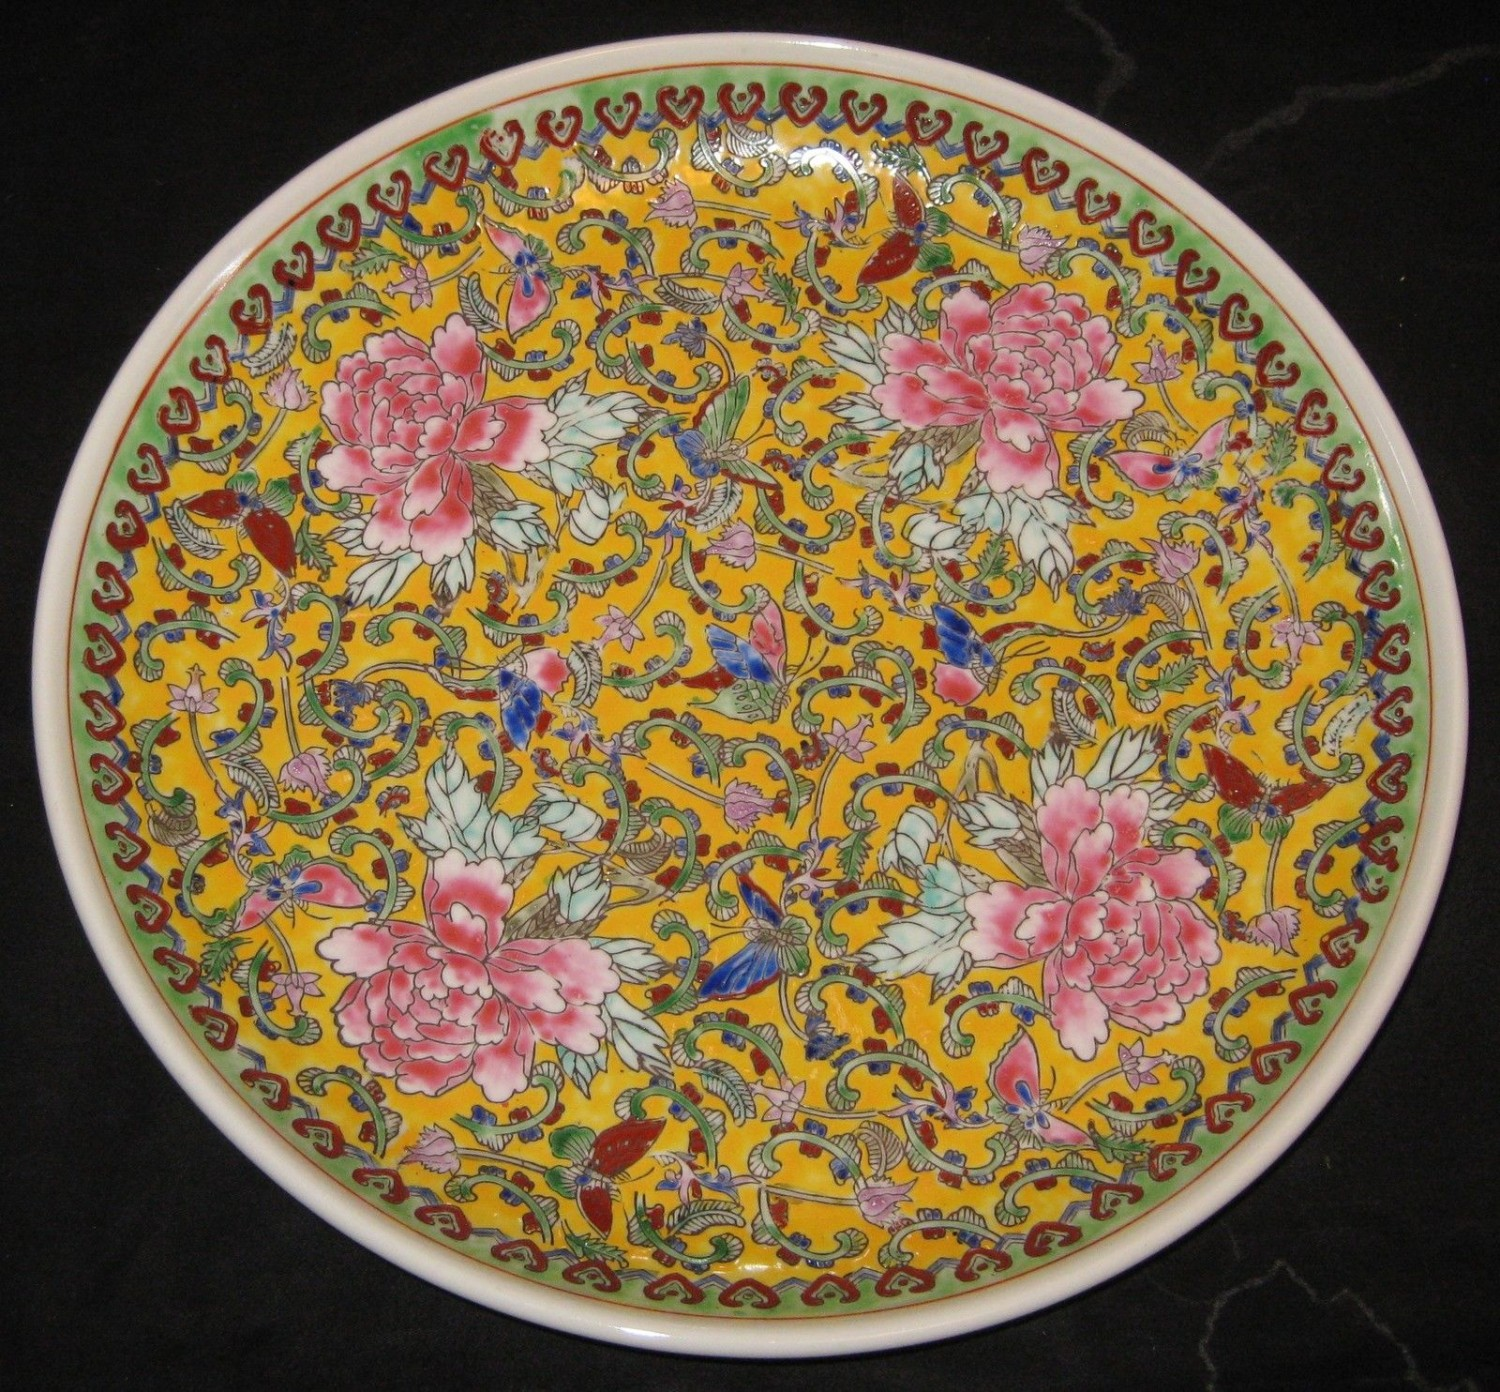 ANTIQUE CHINESE FAMILLE ROSE PORCELAIN CHARGER PLATE,19TH C., QIANLONG MARK.